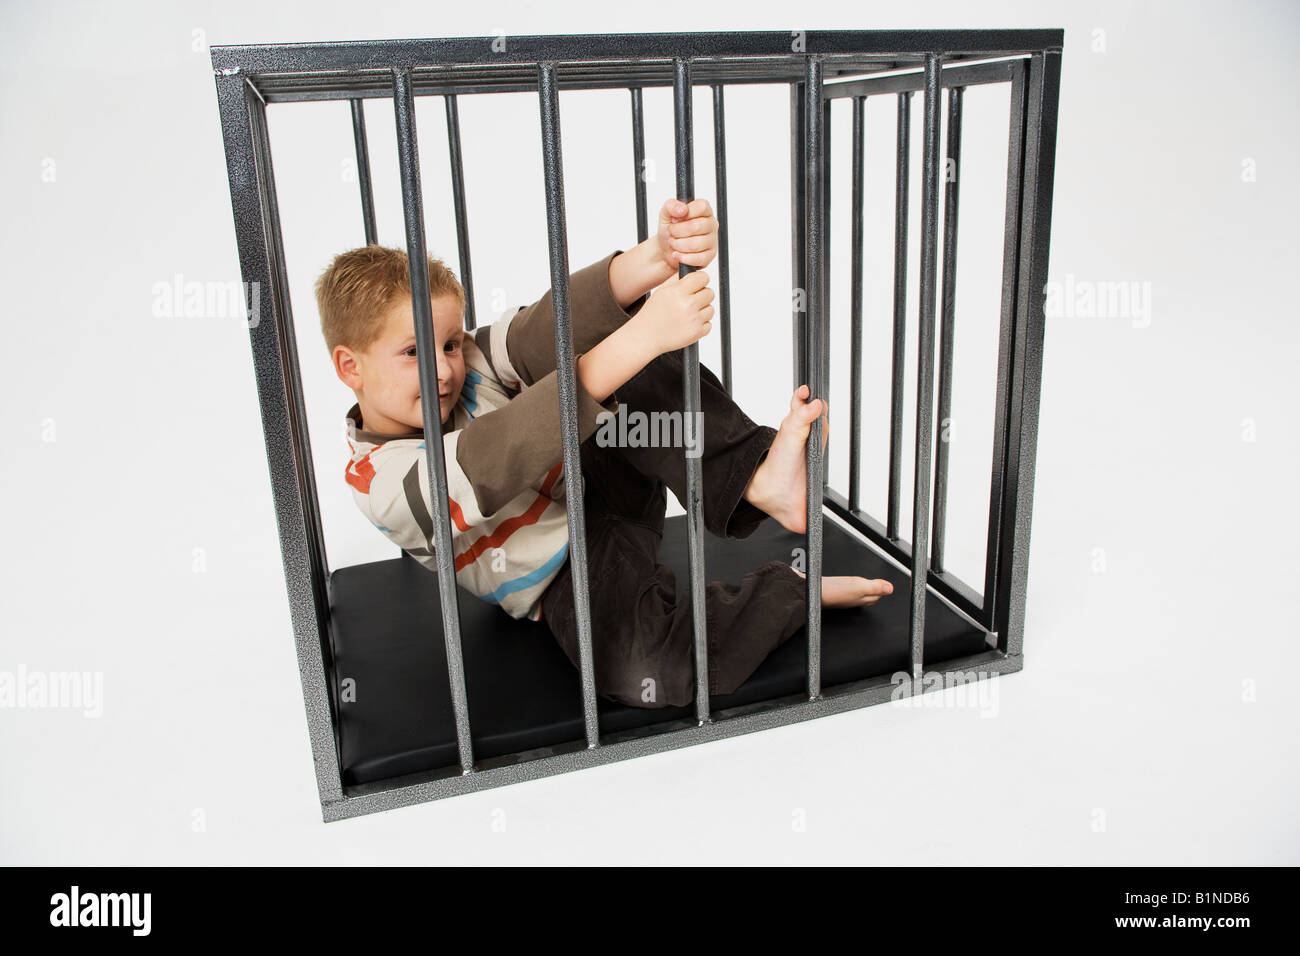 Cameron Breaking out of Cage - Stock Image